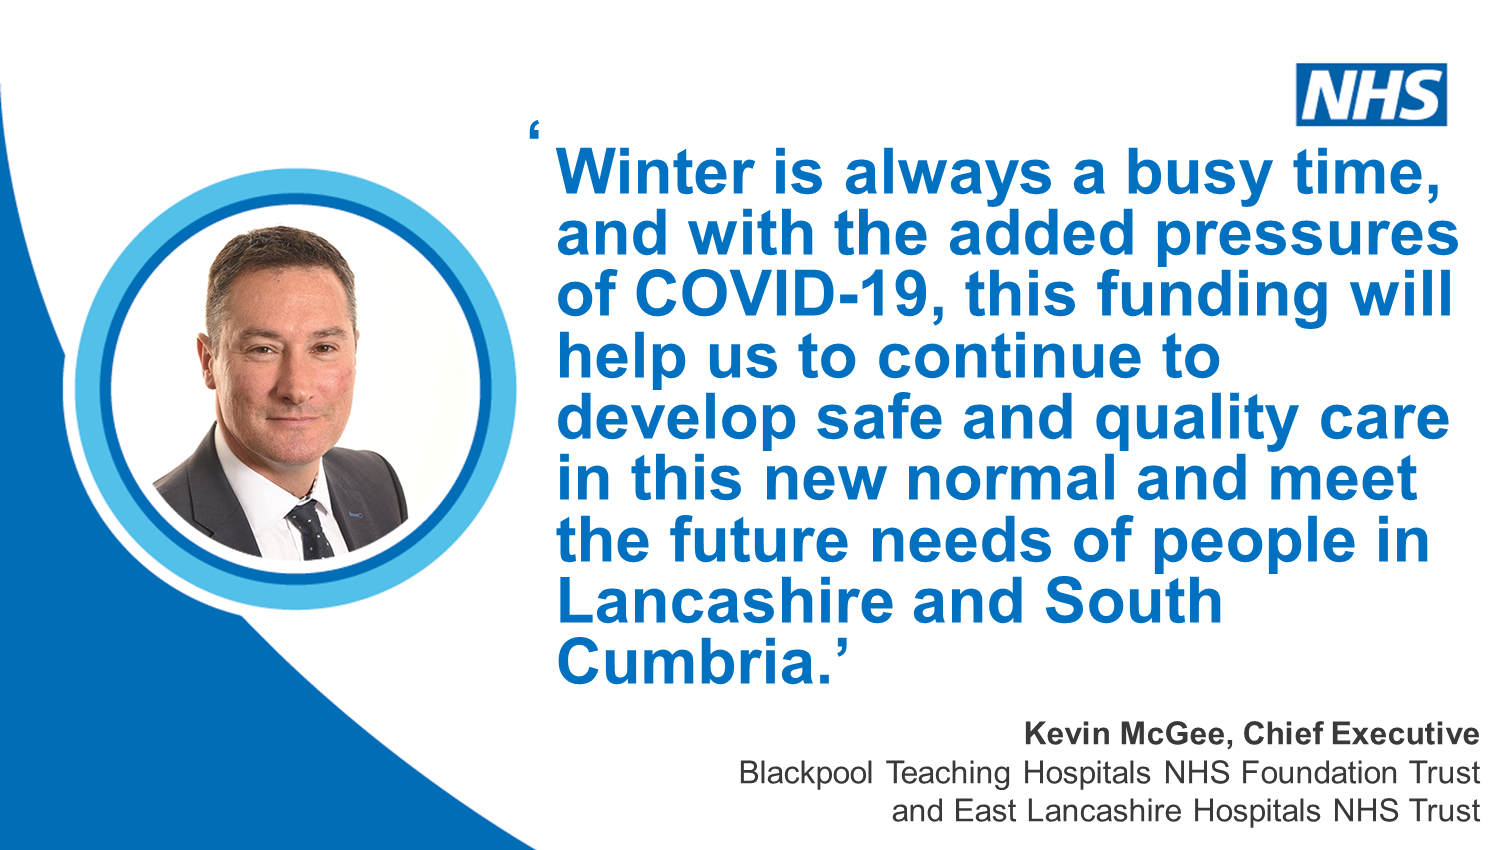 Lancashire and South Cumbria hospitals receive £10.2m to prepare for winter